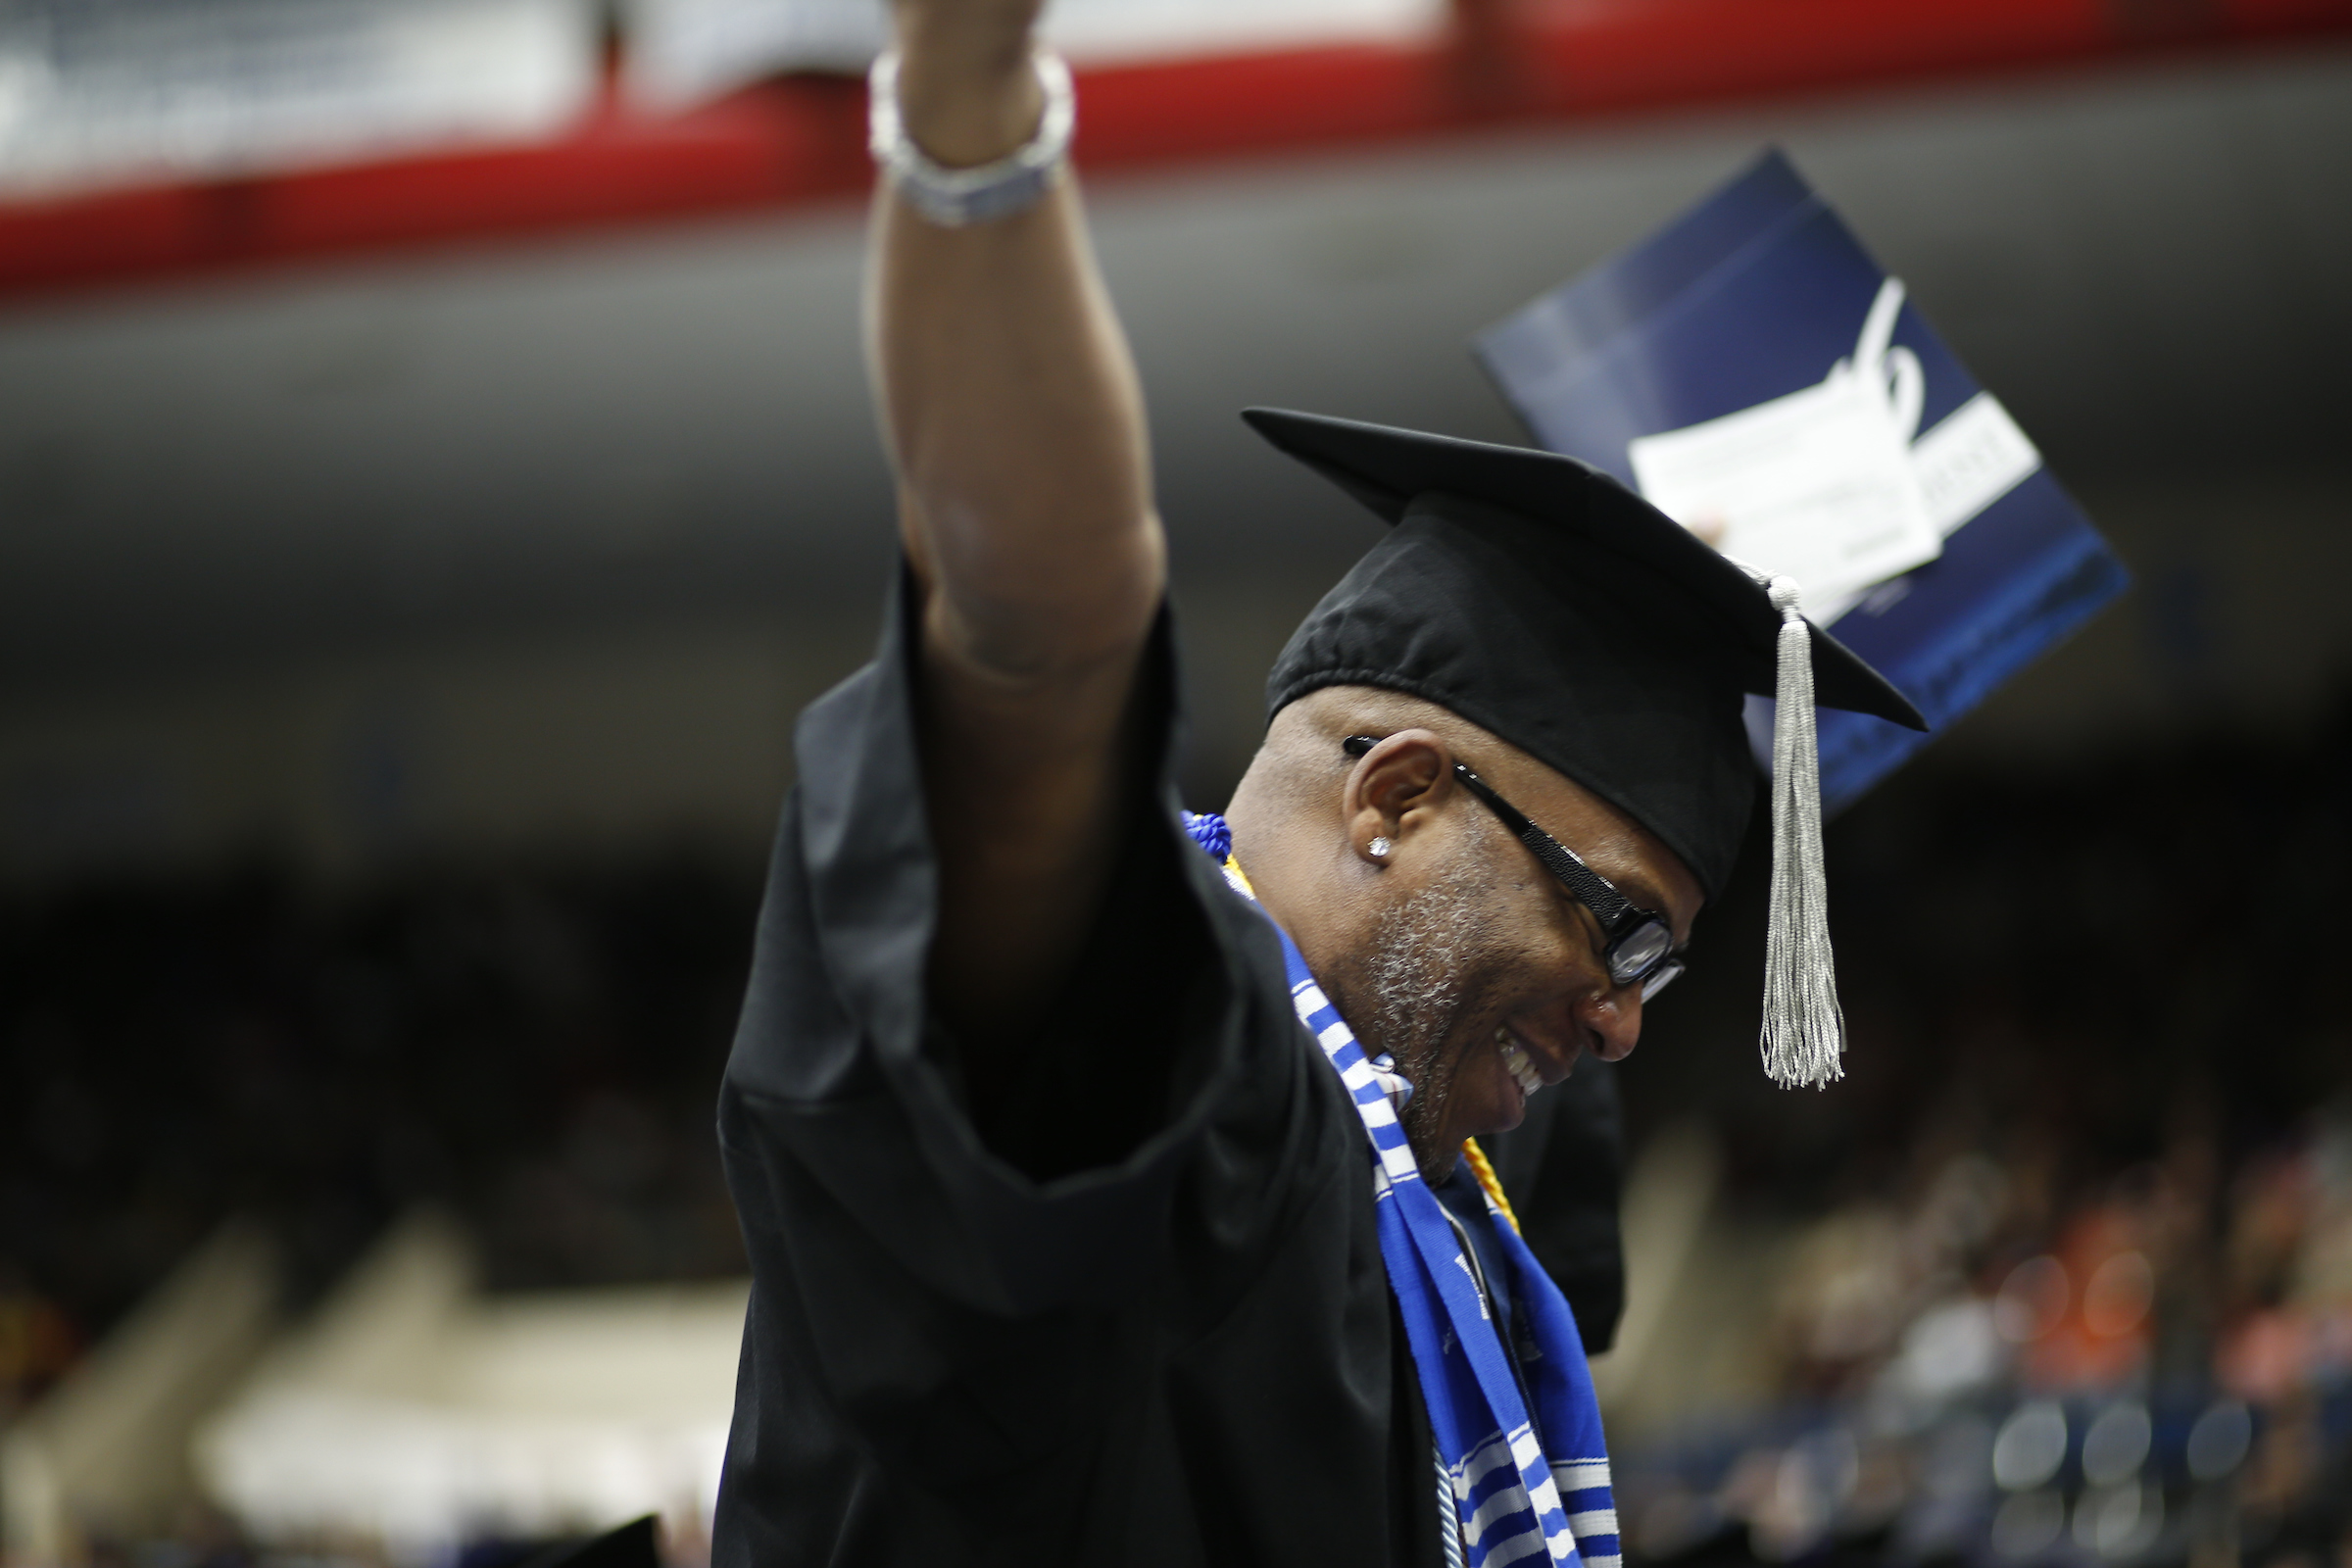 Keith Kennard cannot contain his elation over receiving his degree putting an end to a 6 hour commute from Atlanta to Jackson over a 2-year time frame. (Photo by Charles A. Smith/JSU)